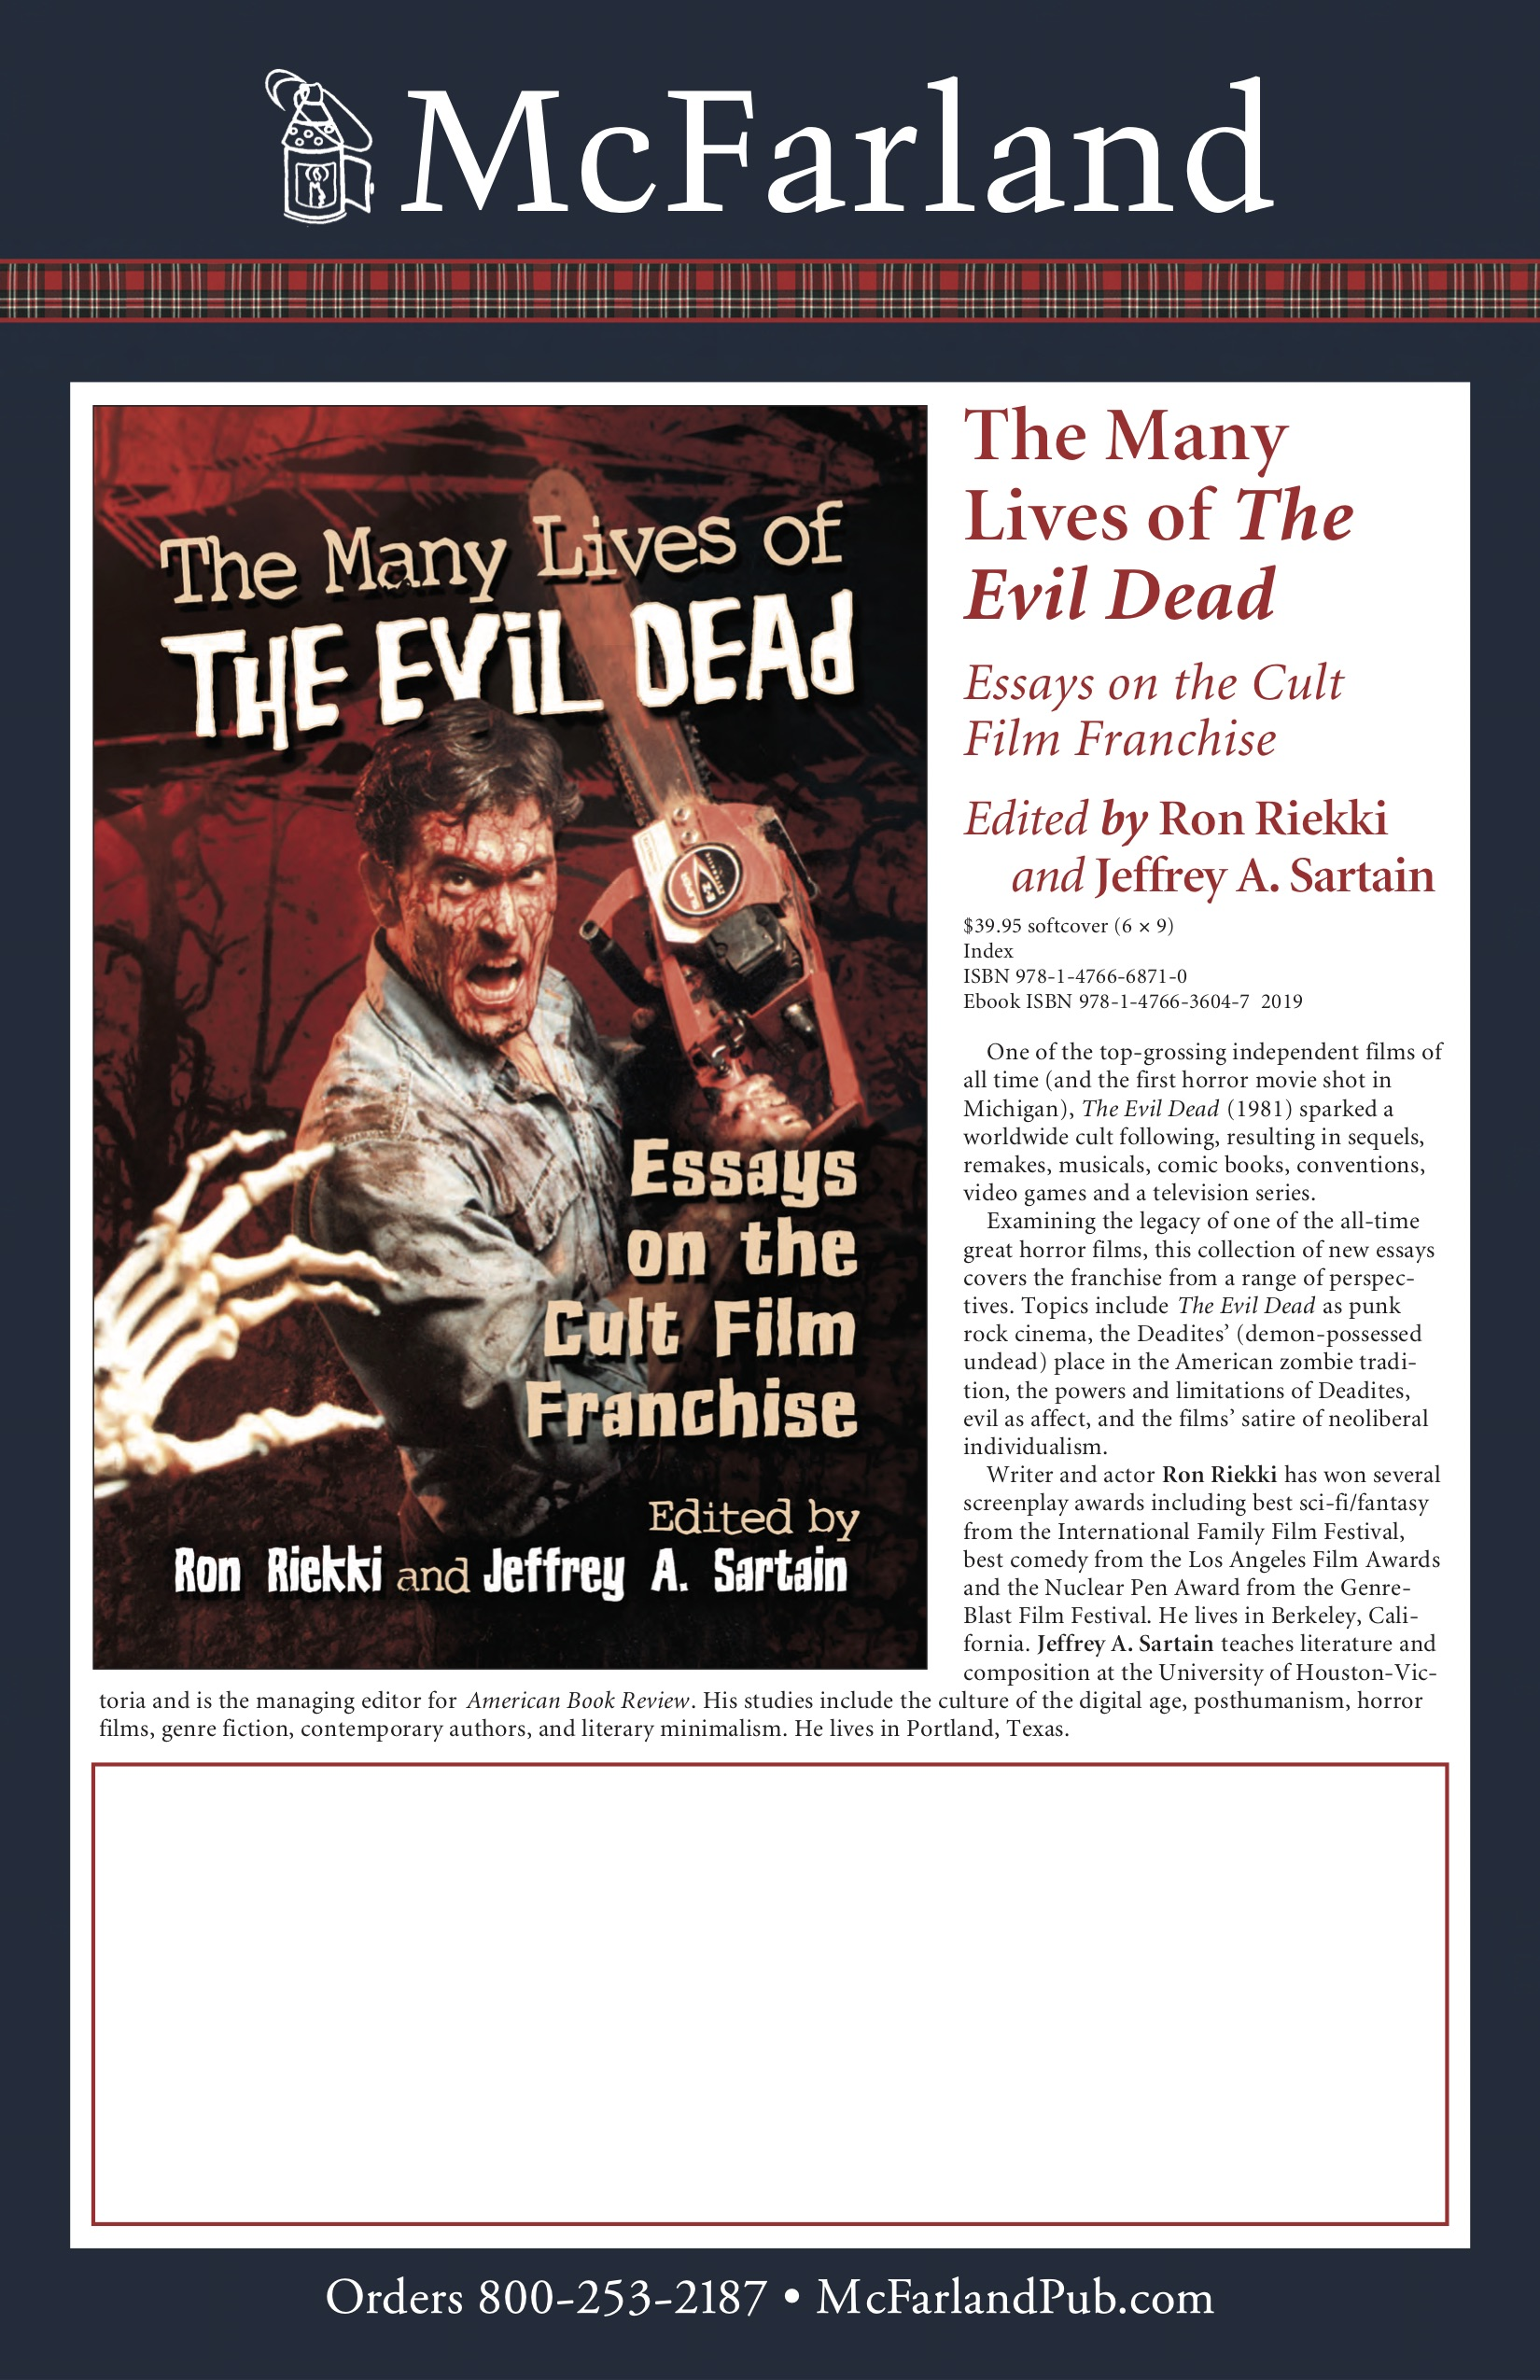 The Many Lives of the Evil Dead - book cover